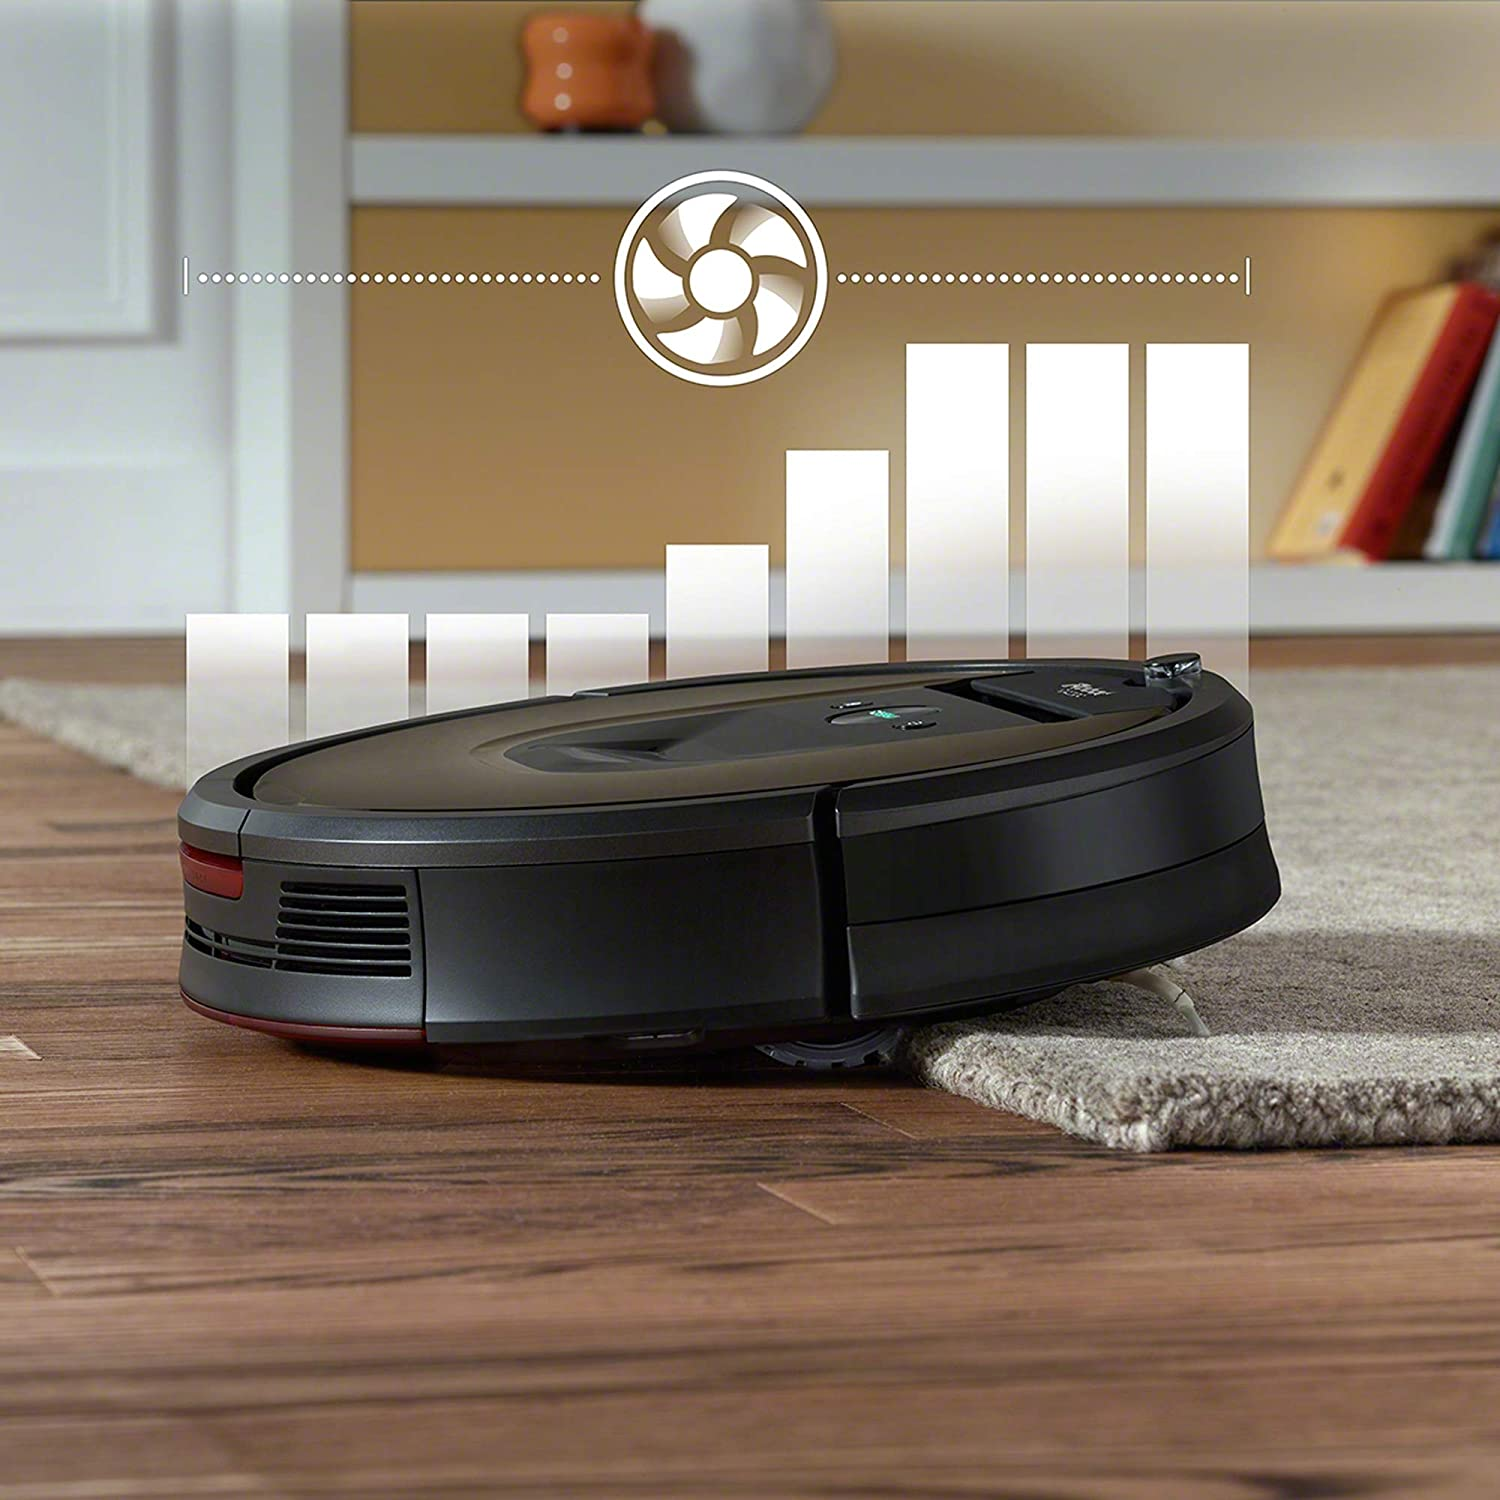 iRobot Roomba 980 Robot Vacuum Cleaner Black Next Day UPS Delivery